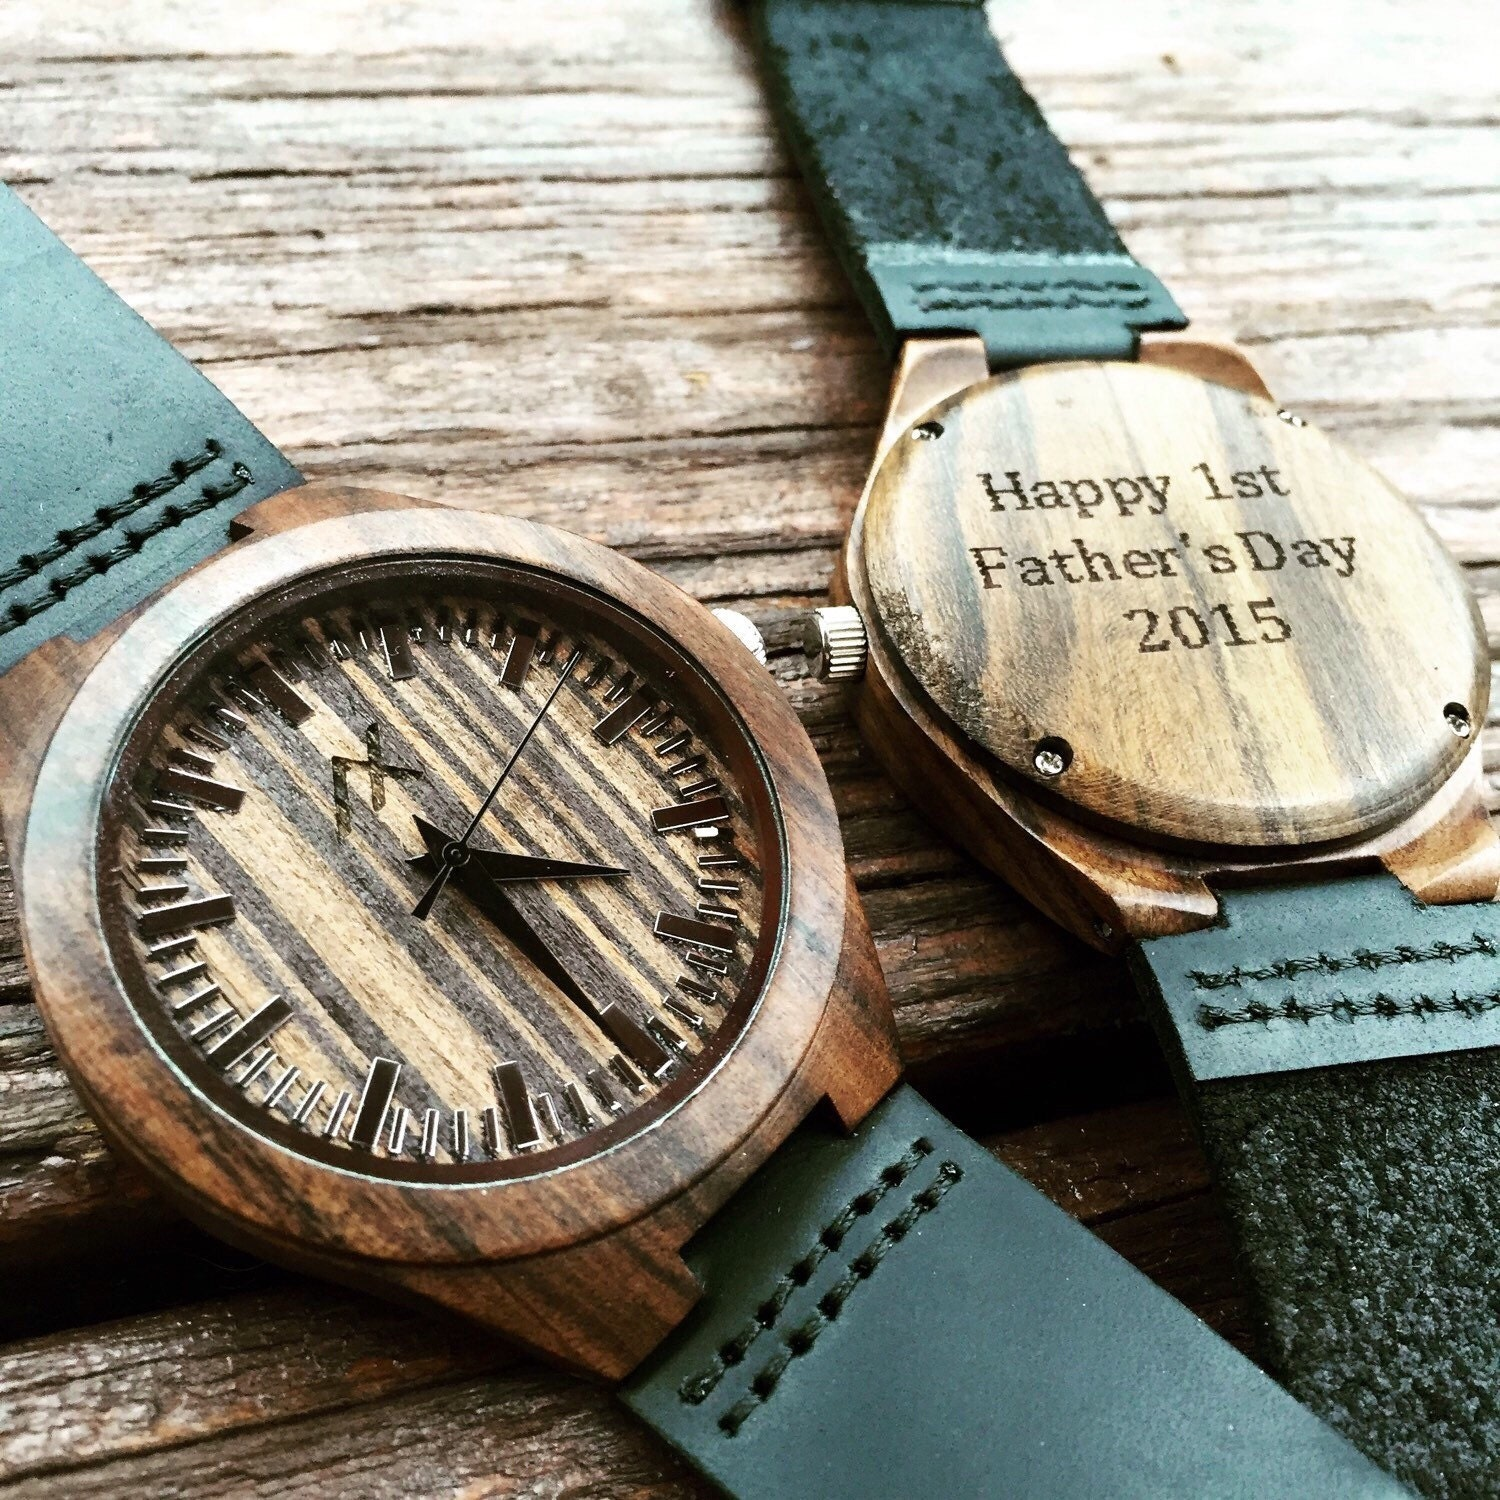 bamboo box quality wooden bird watches bobo wood wrist products in logo gift male custom men high watch